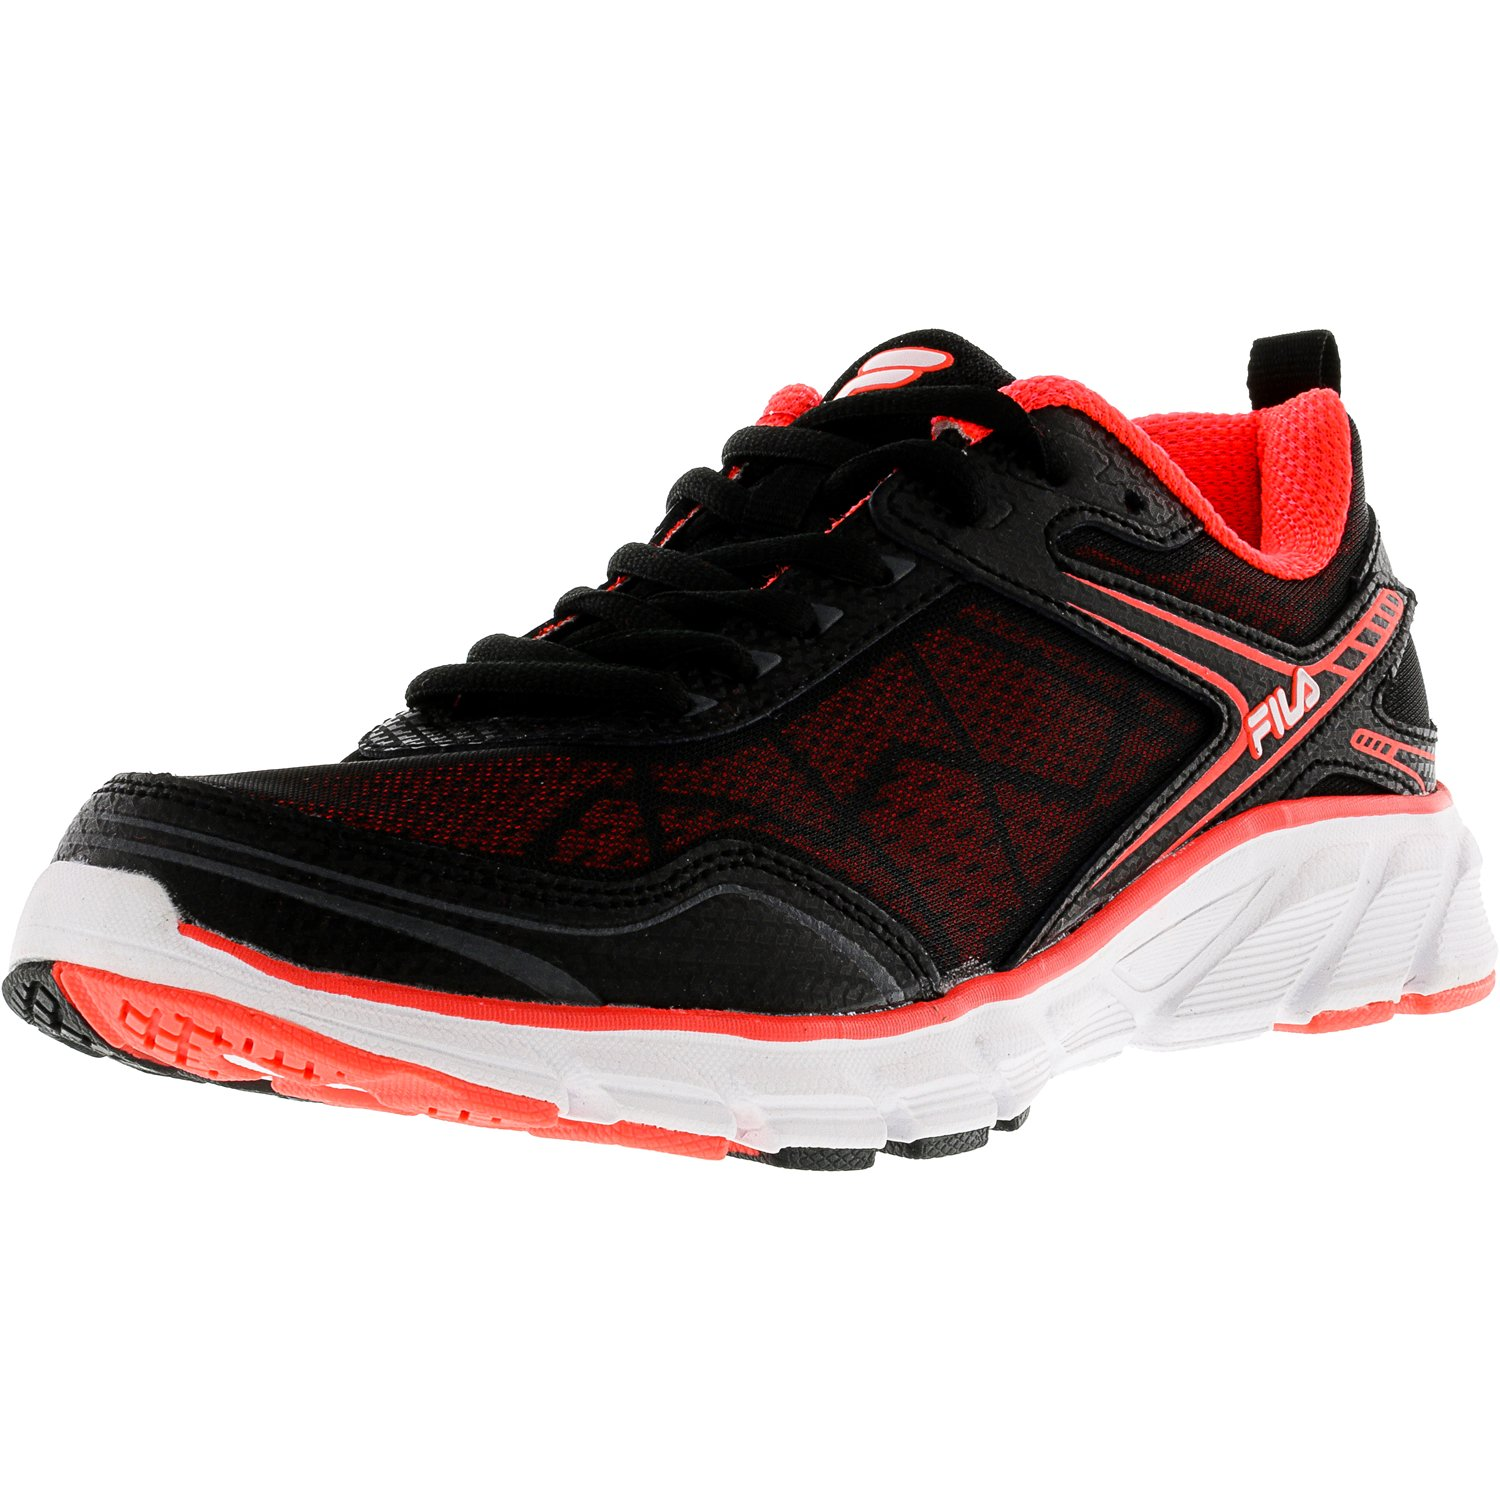 Fila Women's Memory Granted Fiery Coral   Black White Ankle-High Running Shoe 8.5M by Fila